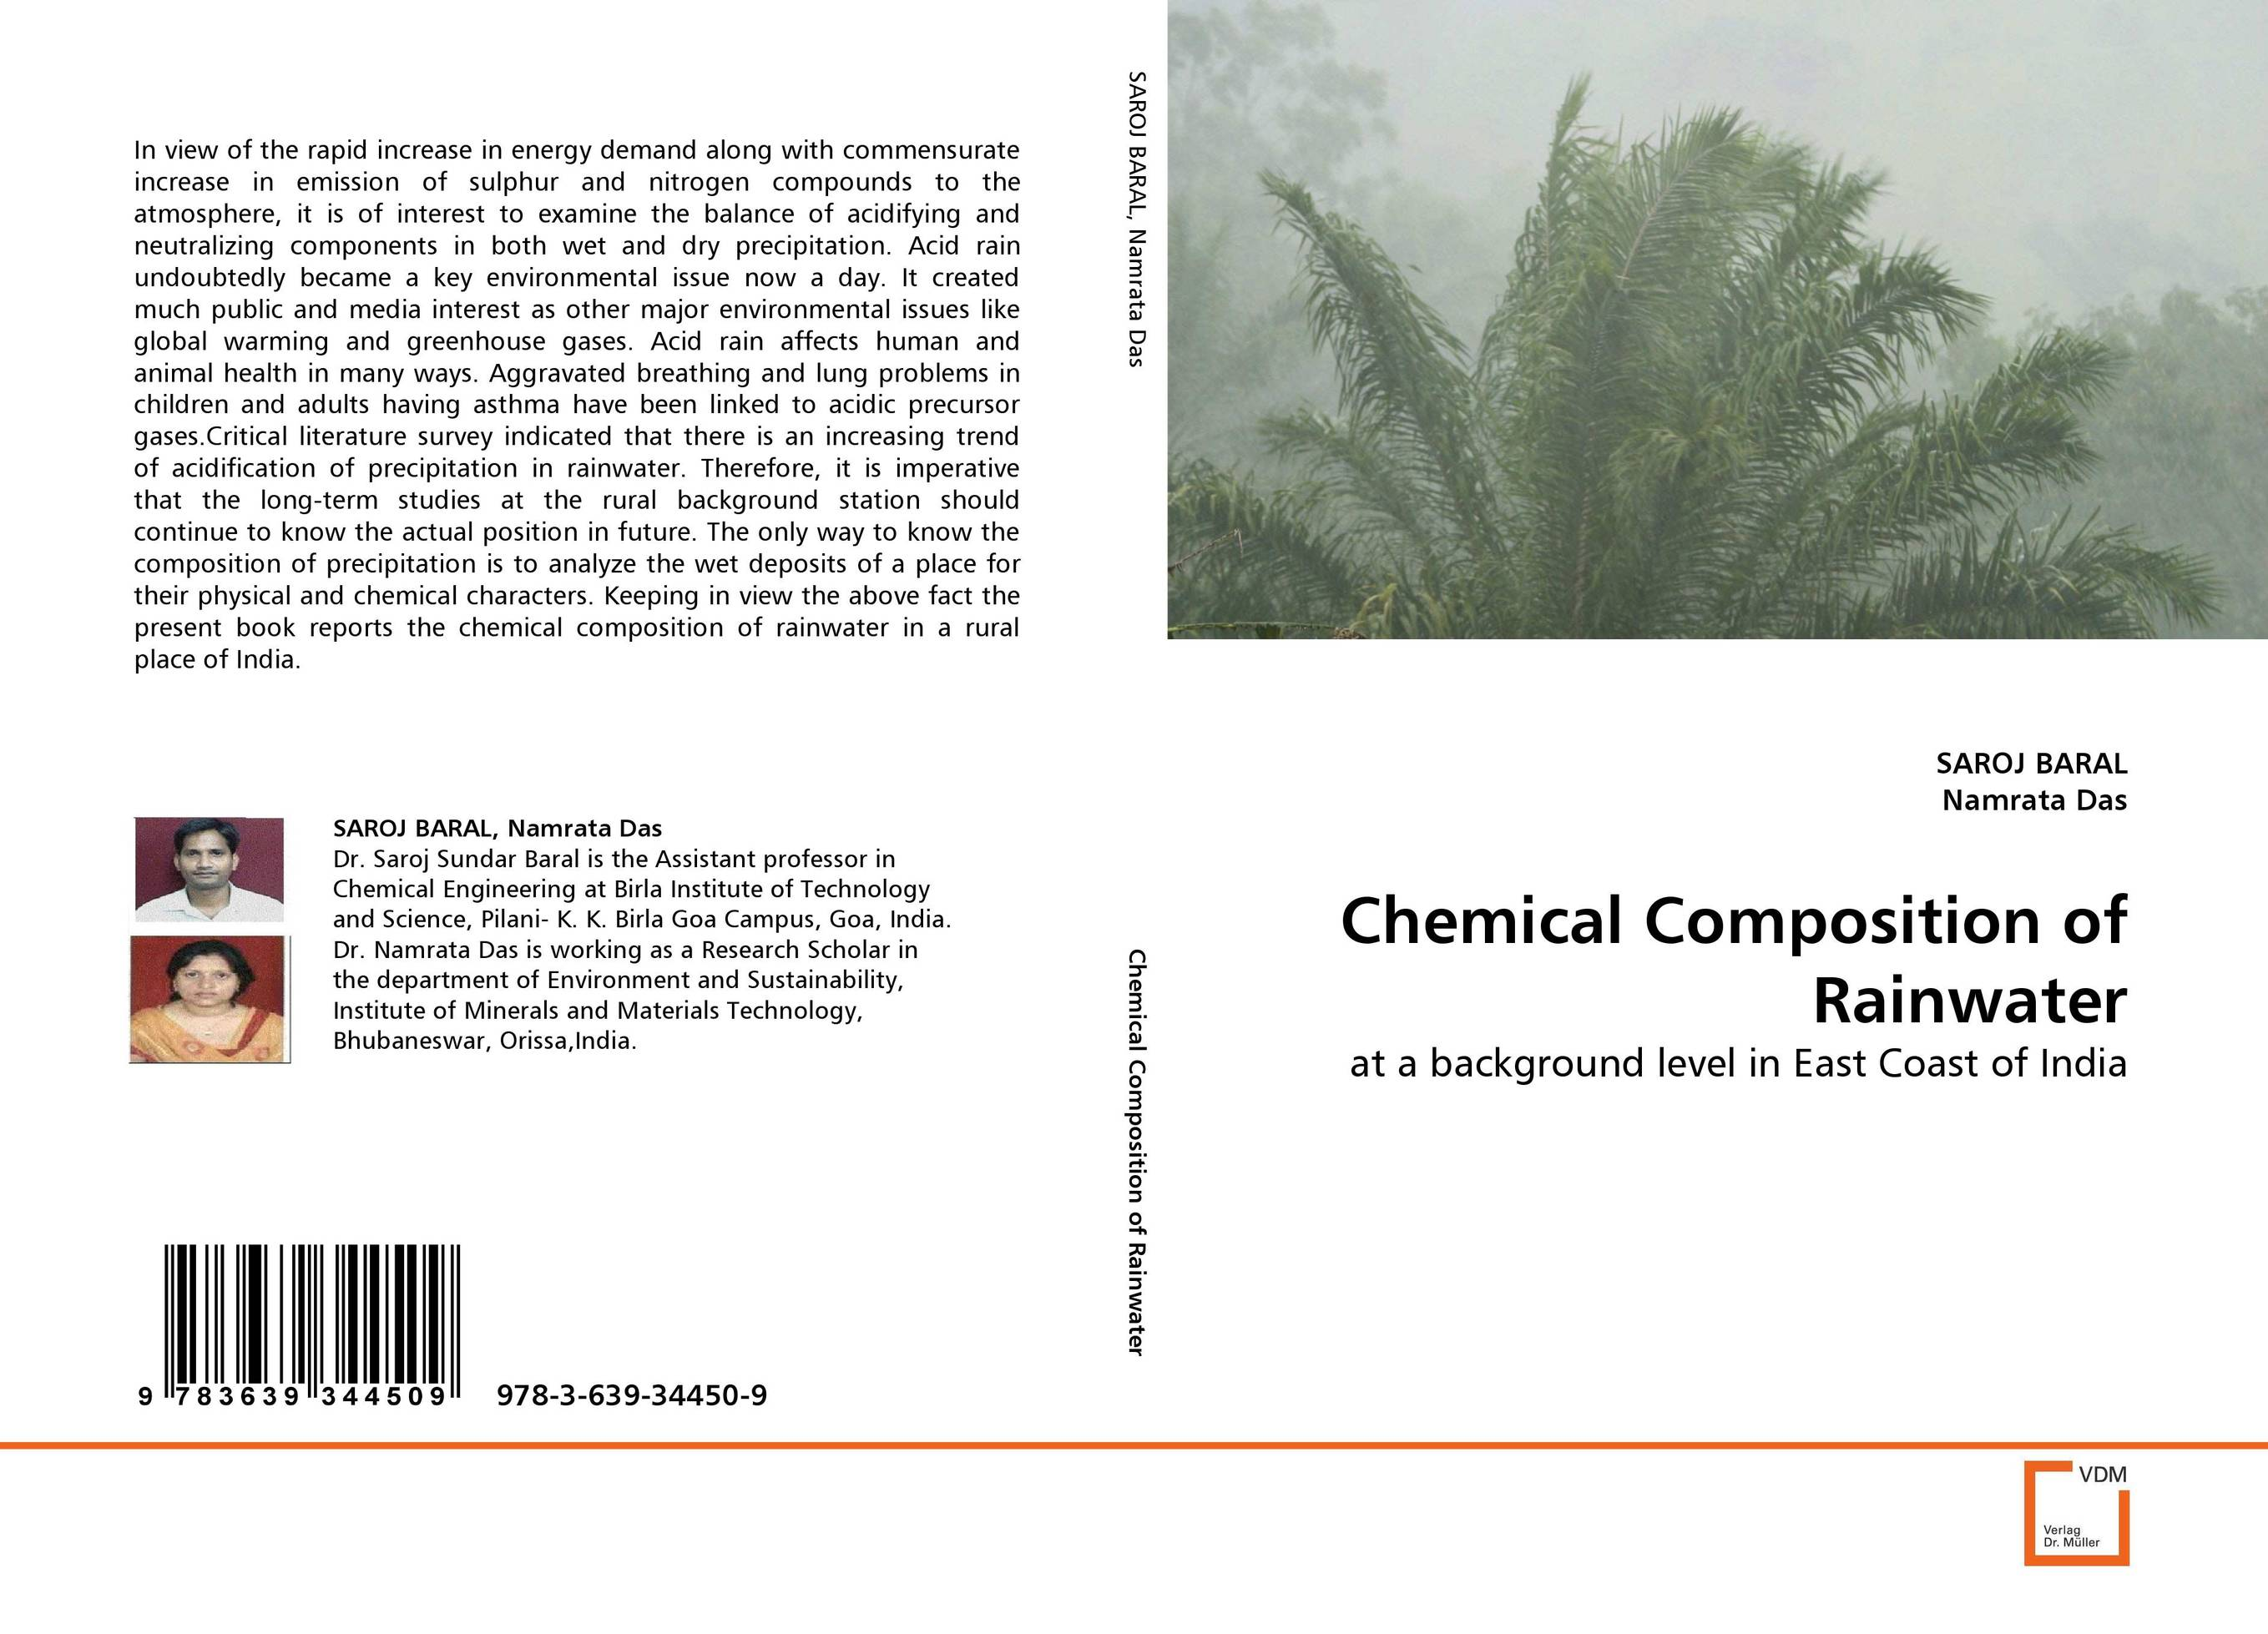 Chemical Composition of Rainwater